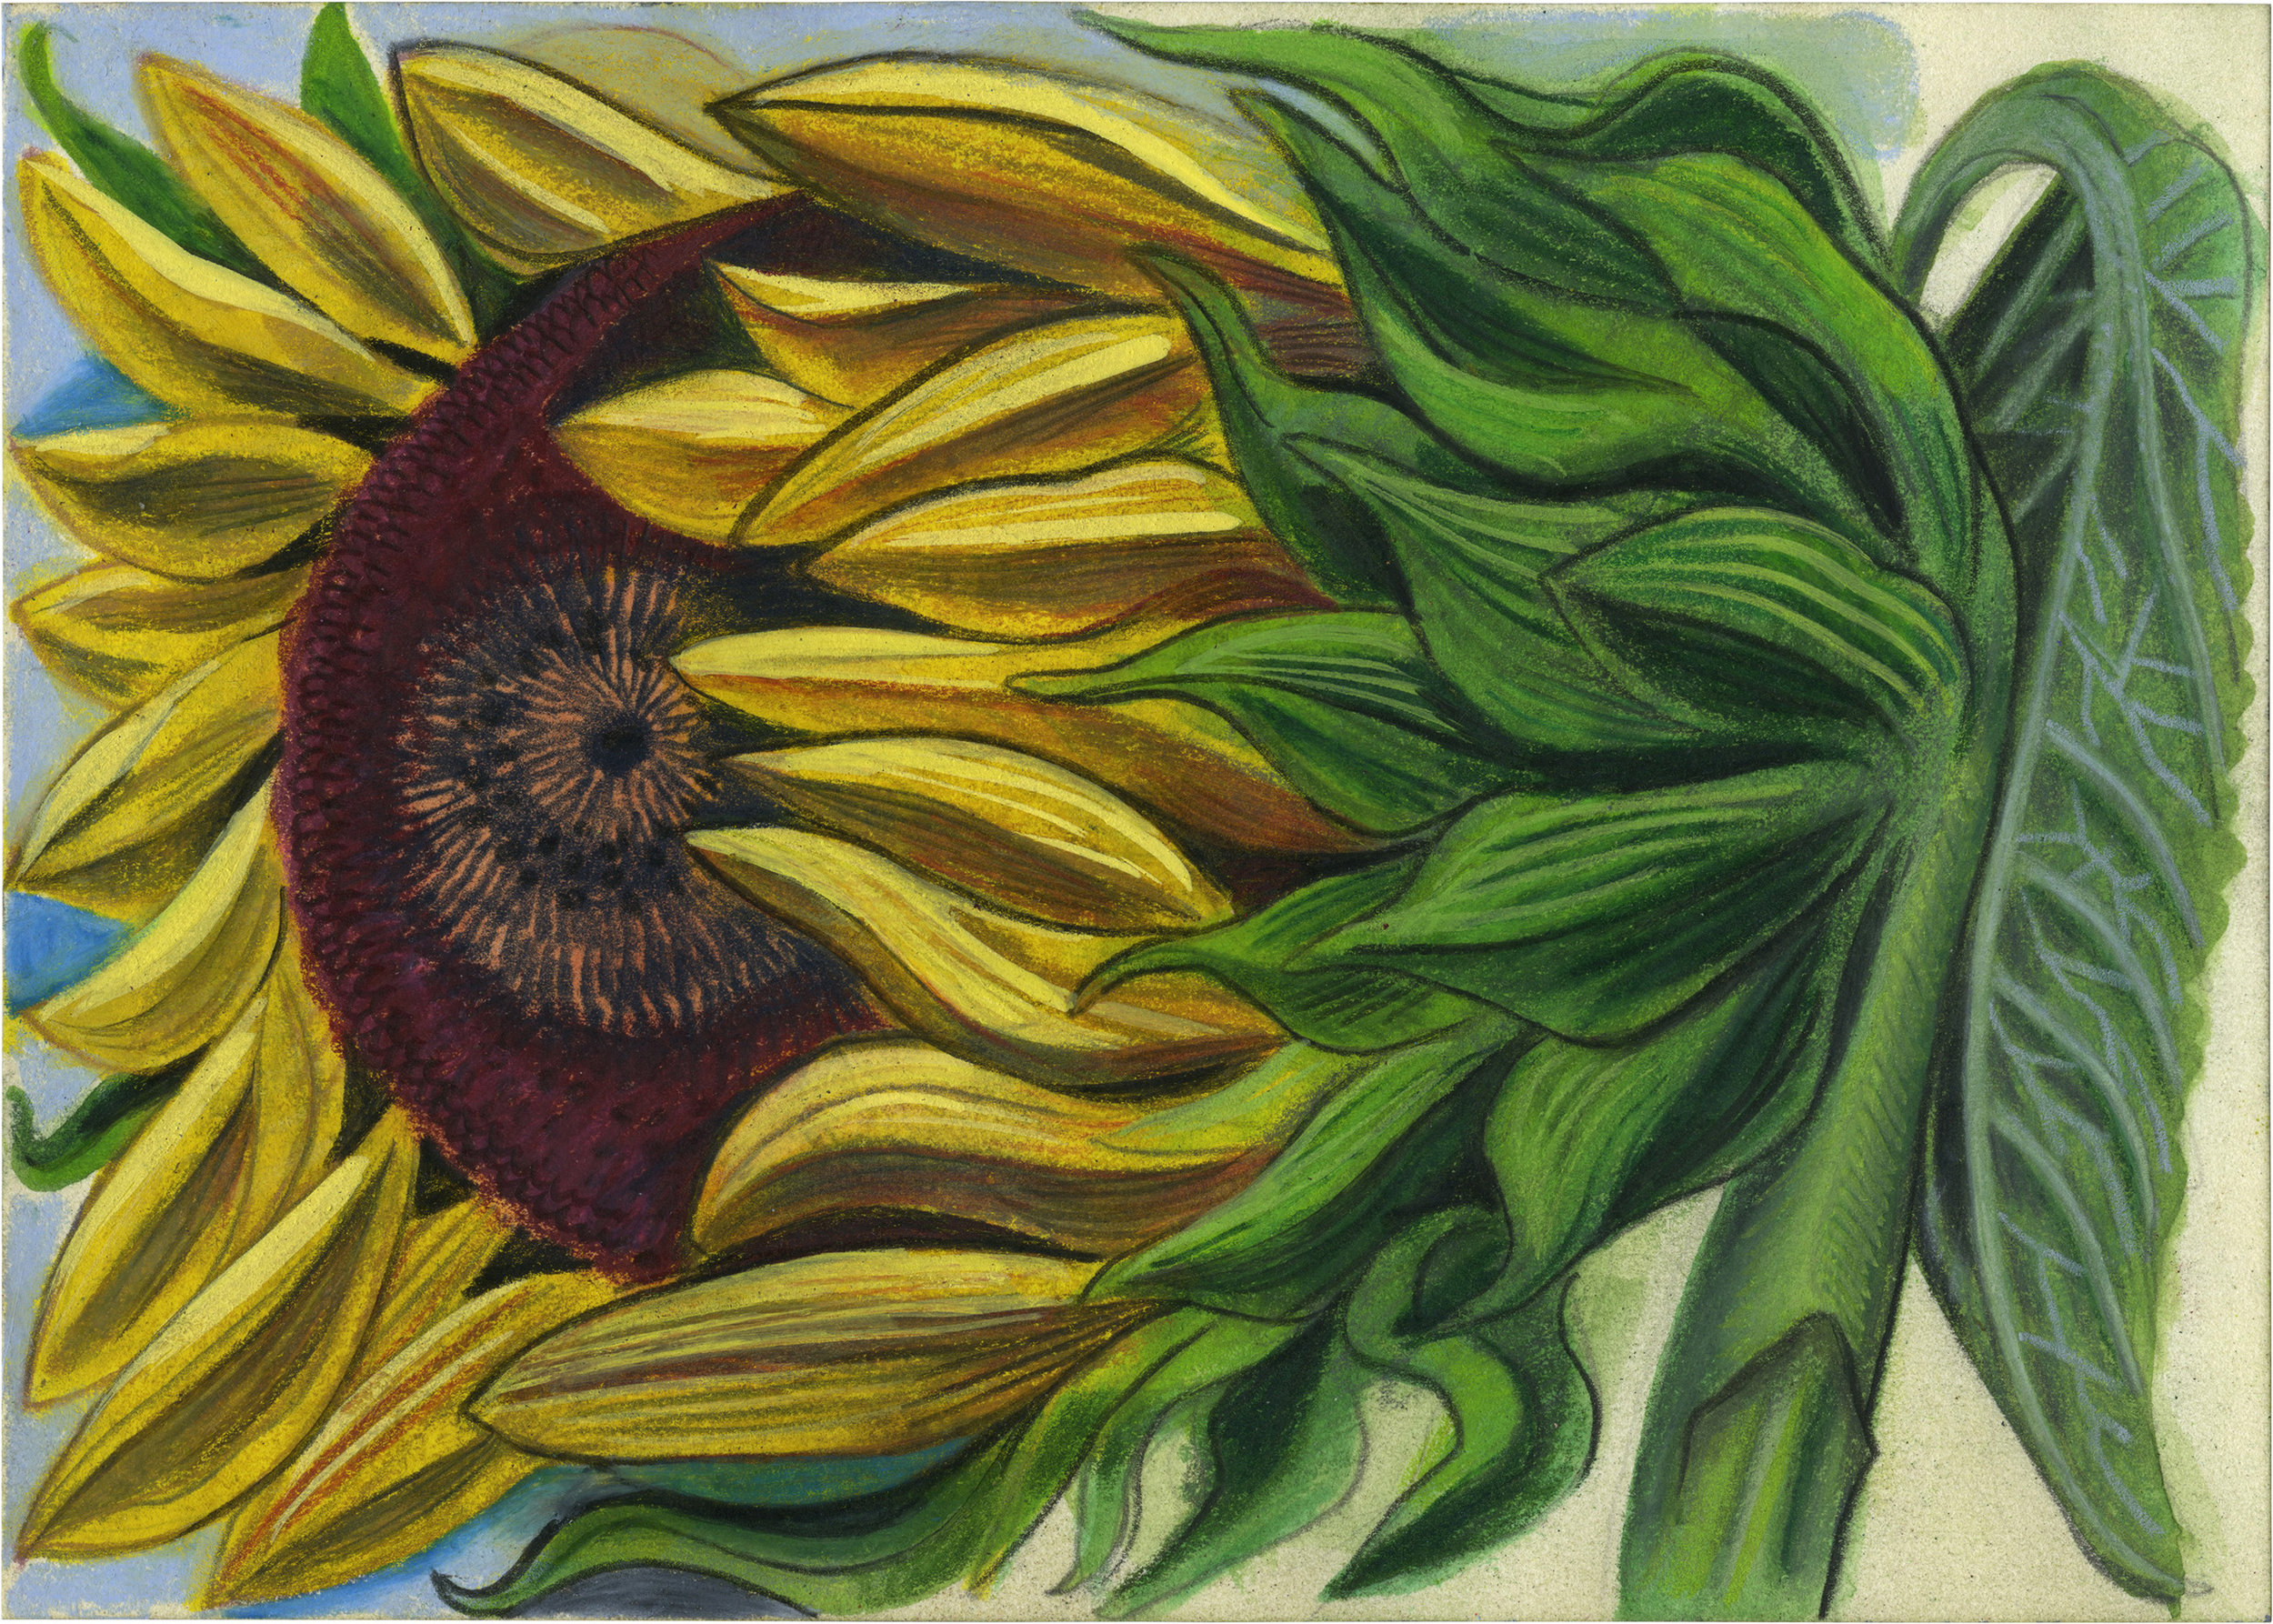 Sunflower,  2019  Mixed media on paper  5 x 7 inches